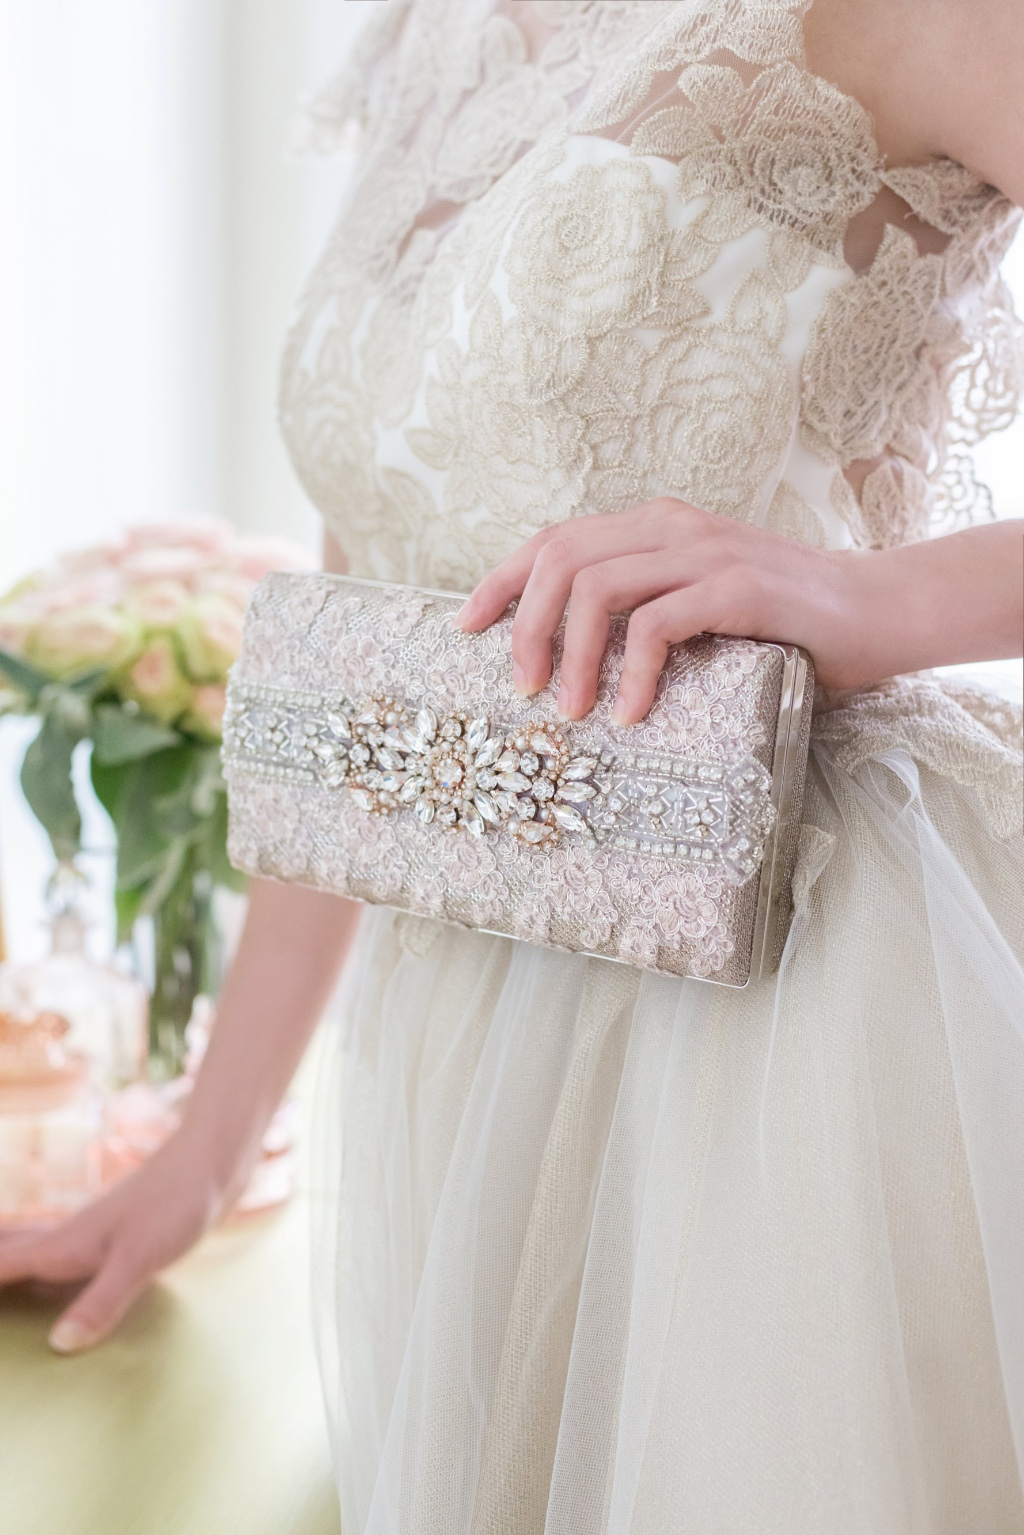 Just the perfect touch of rose gold to finish your bridal clutch